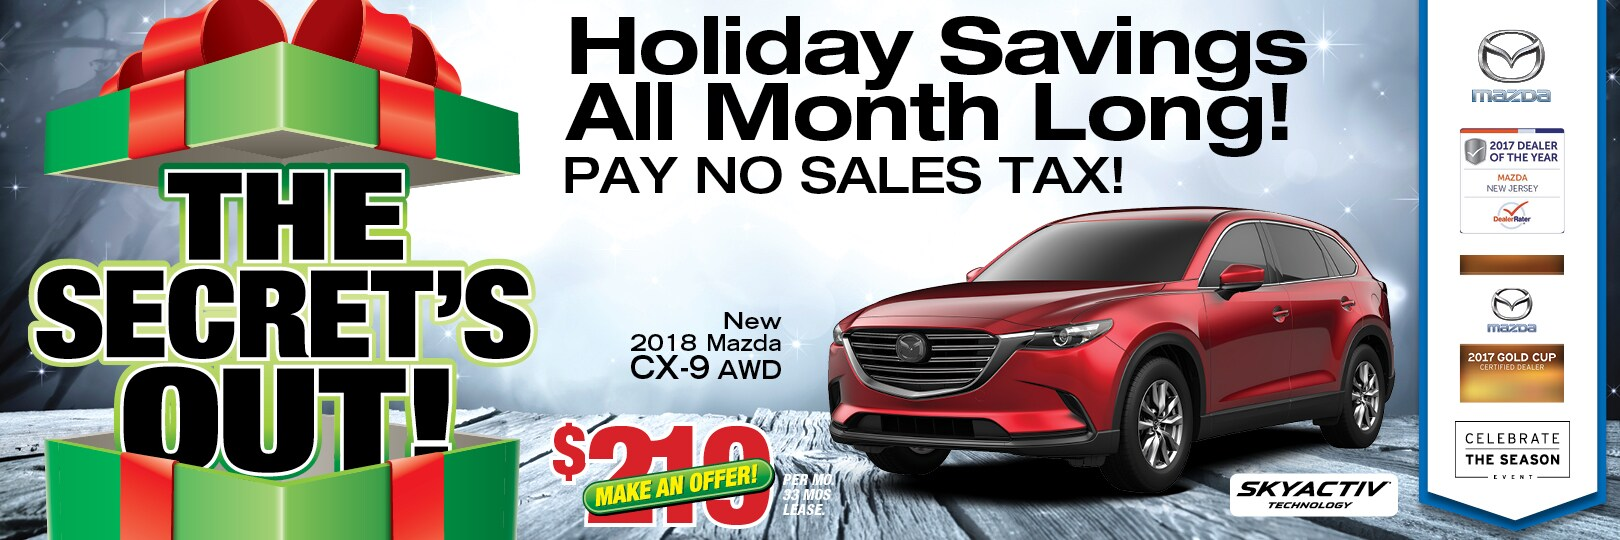 Awesome Mazda CX 9 Specials